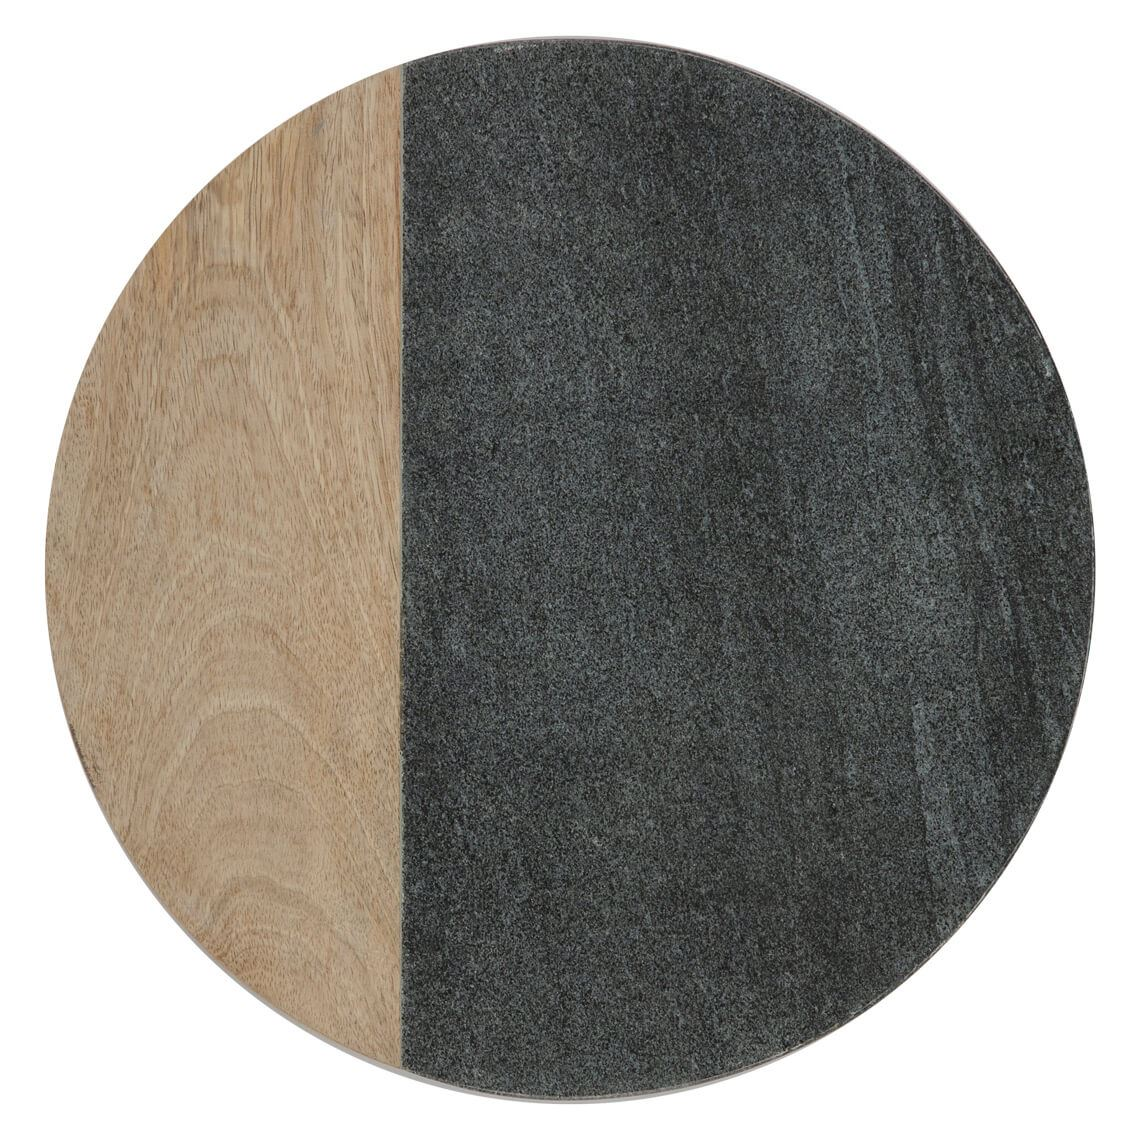 Marble Round Cheese Board Size W 30cm x D 30cm x H 2cm in Black Freedom